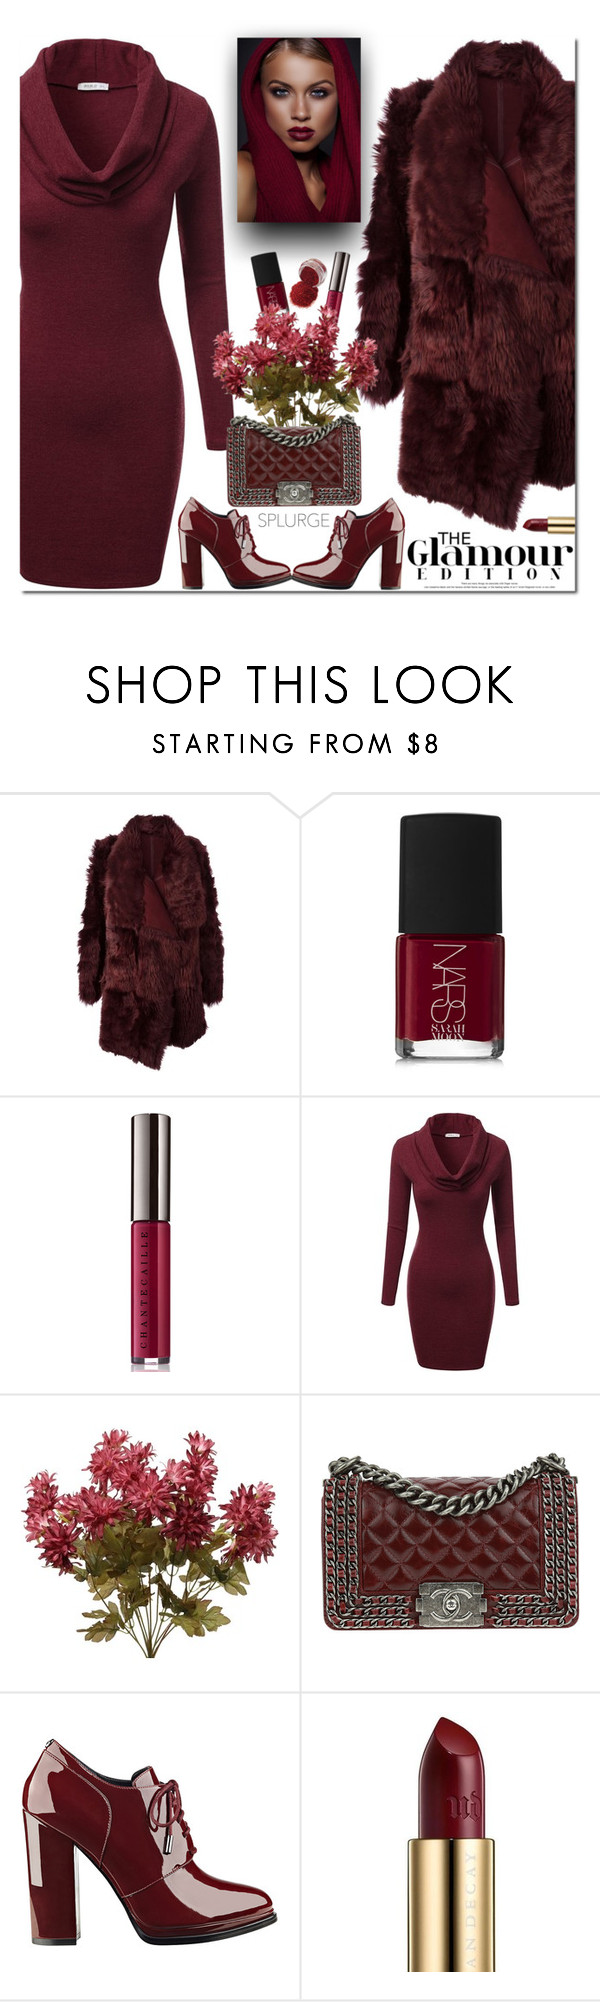 """Splurge Gift - You're Worth It!"" by firstclass1 ❤ liked on Polyvore featuring Meteo by Yves Salomon, NARS Cosmetics, Chantecaille, J.TOMSON, Chanel, GUESS, Urban Decay, fashionista, oxblood and glam"